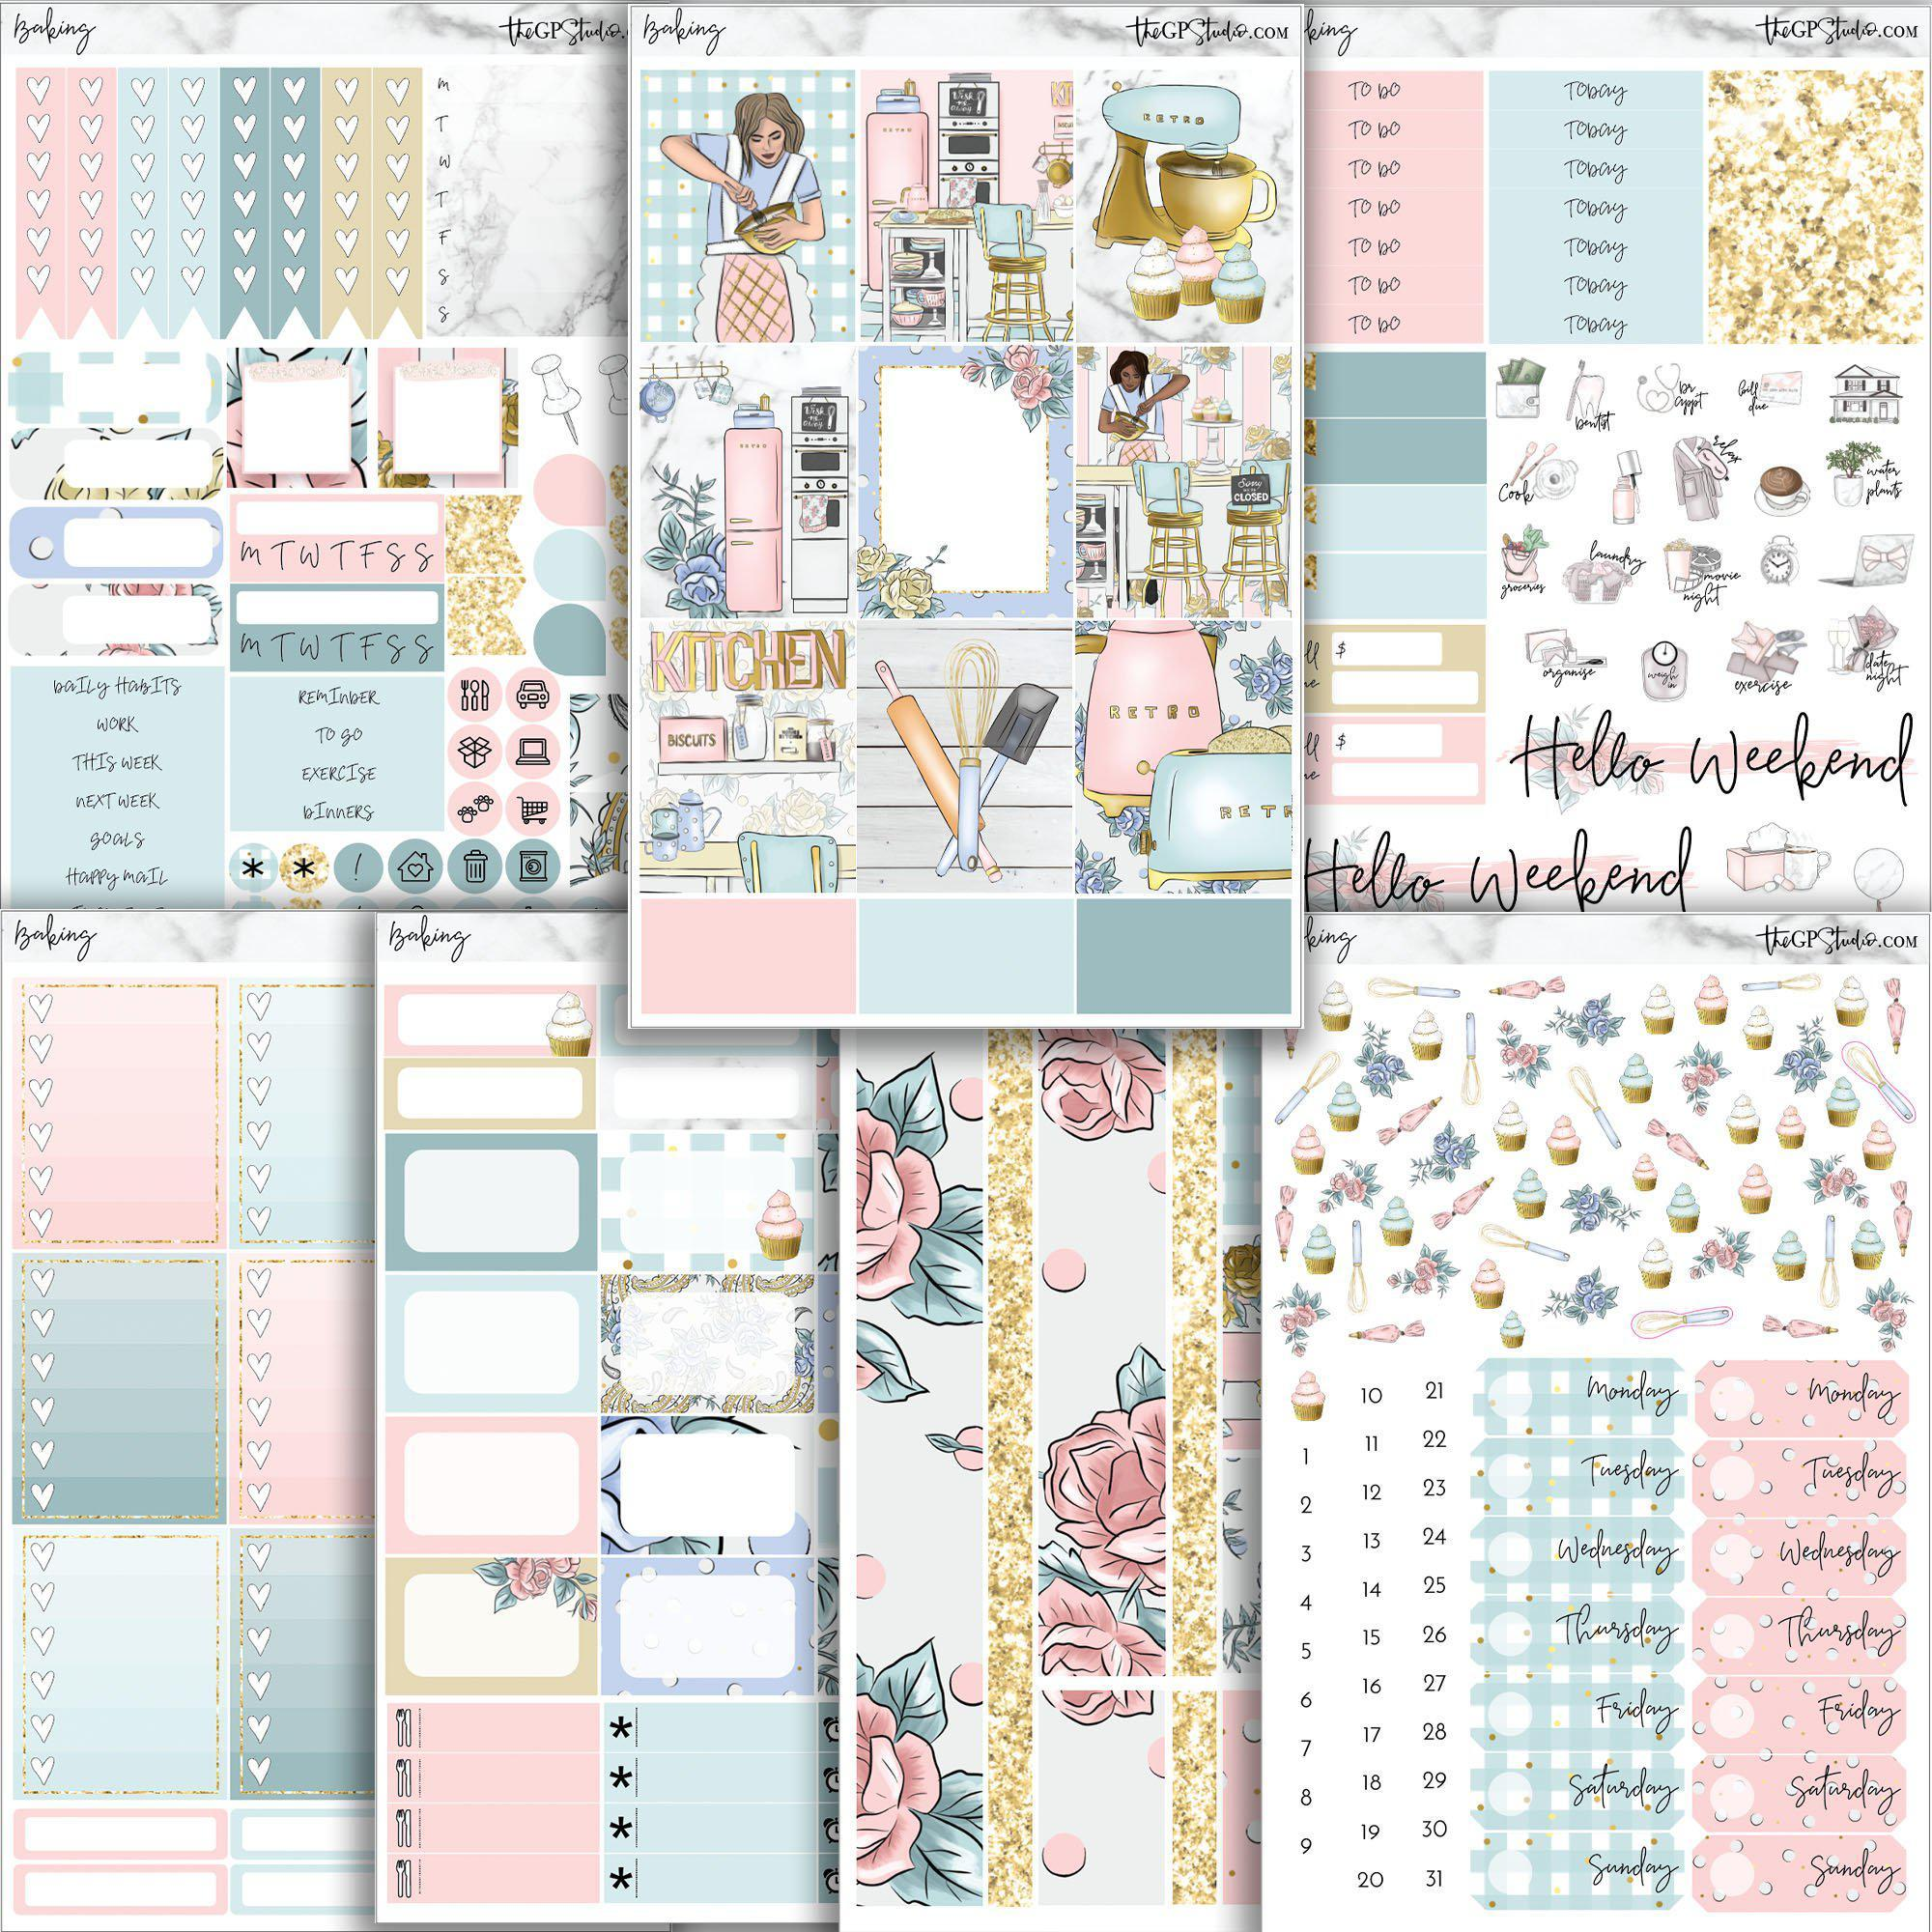 BAKING Planner Sticker Kit-The GP Studio